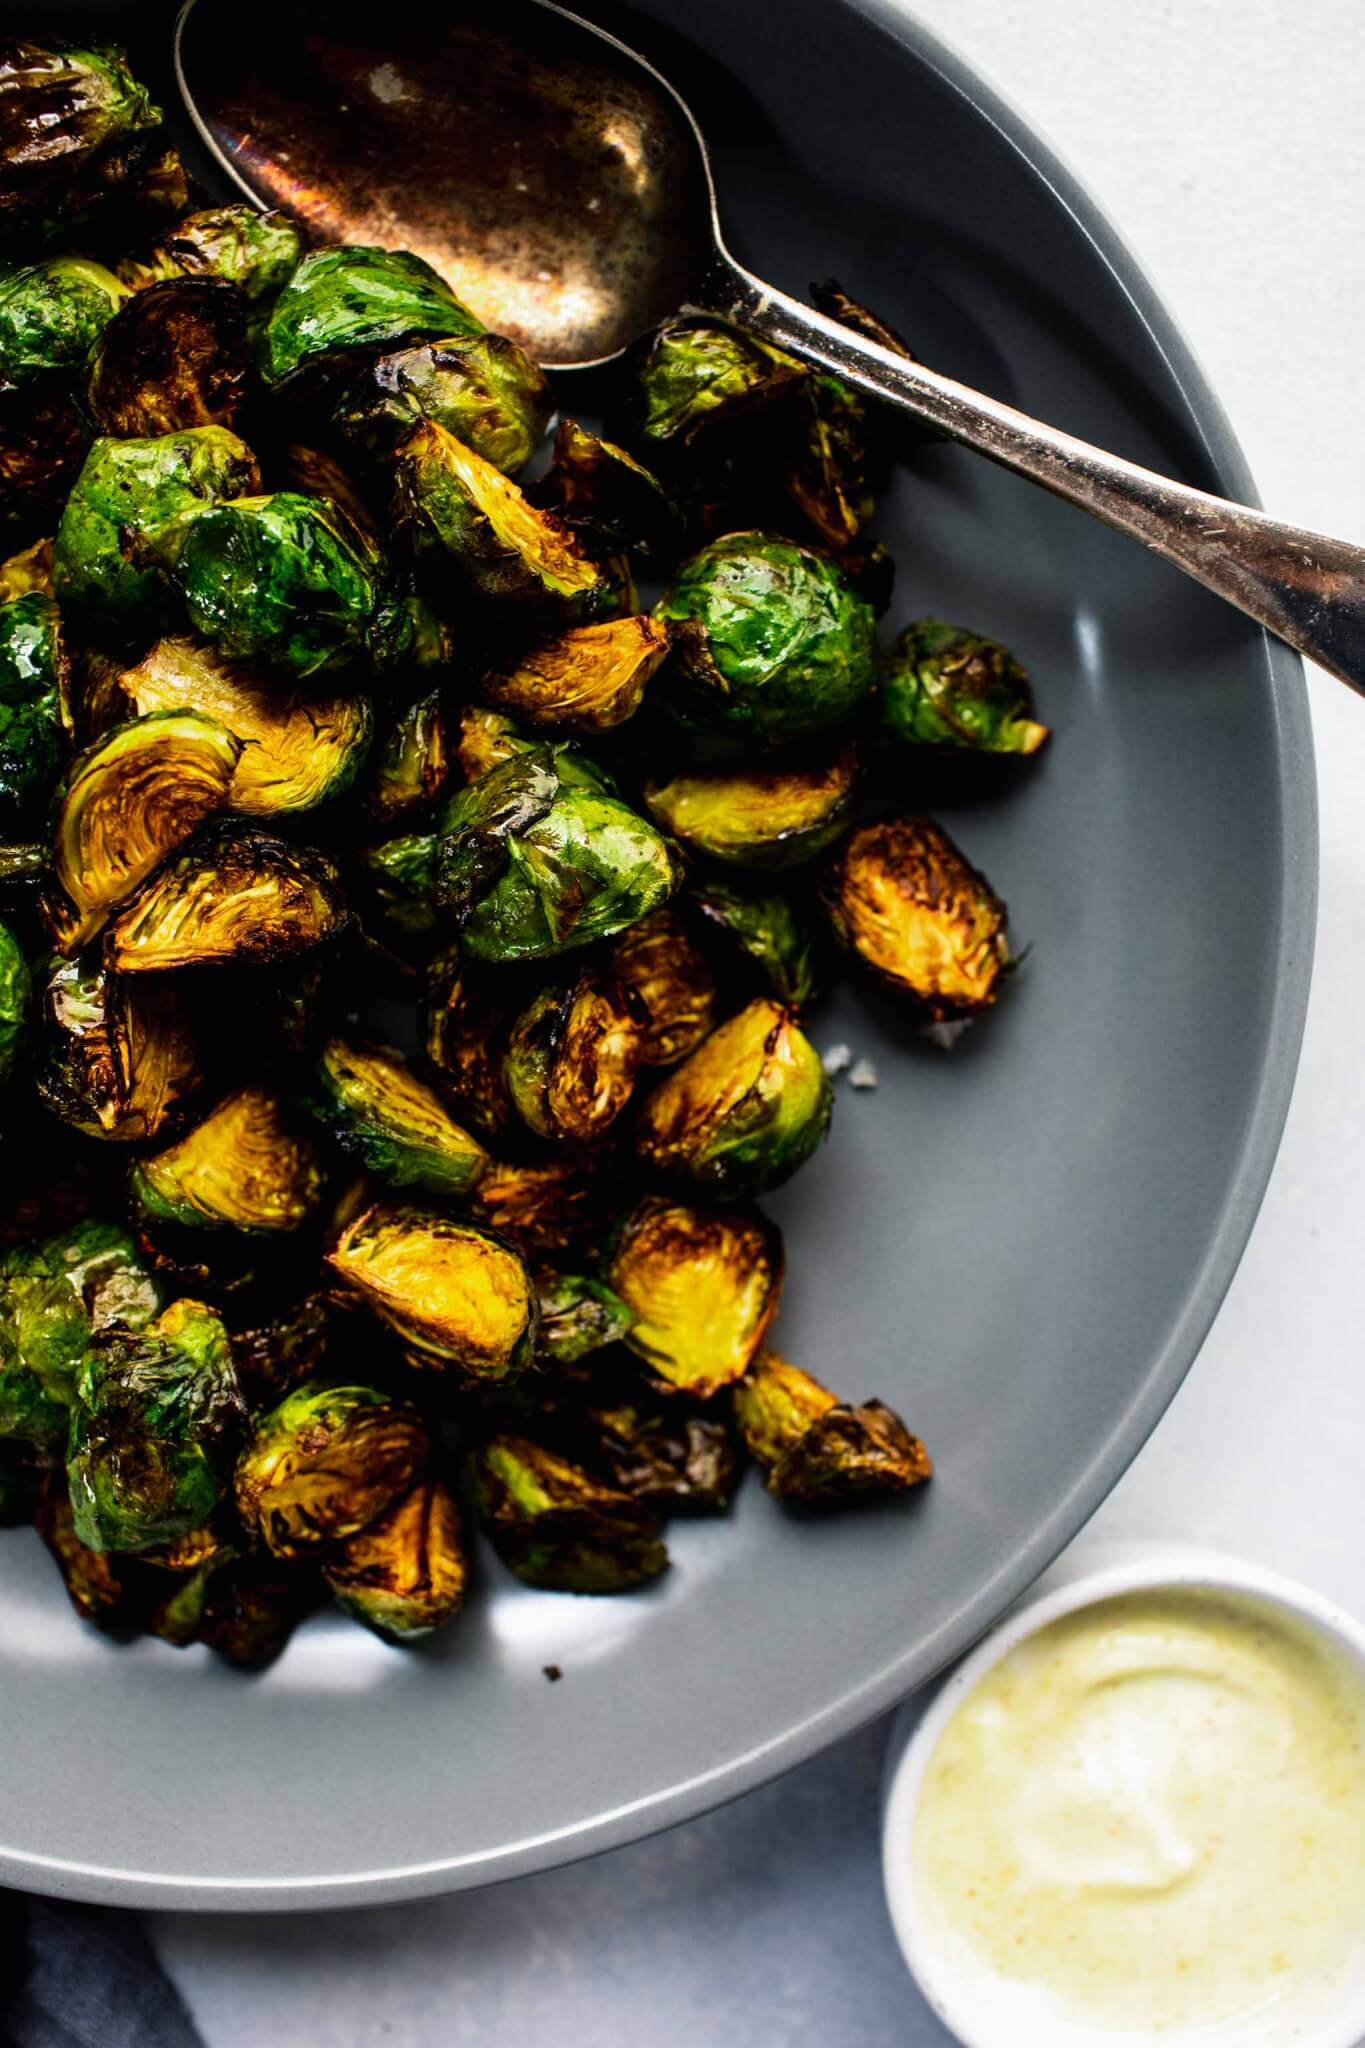 Over head shot of cooked brussels sprouts in grey bowl with spoon.